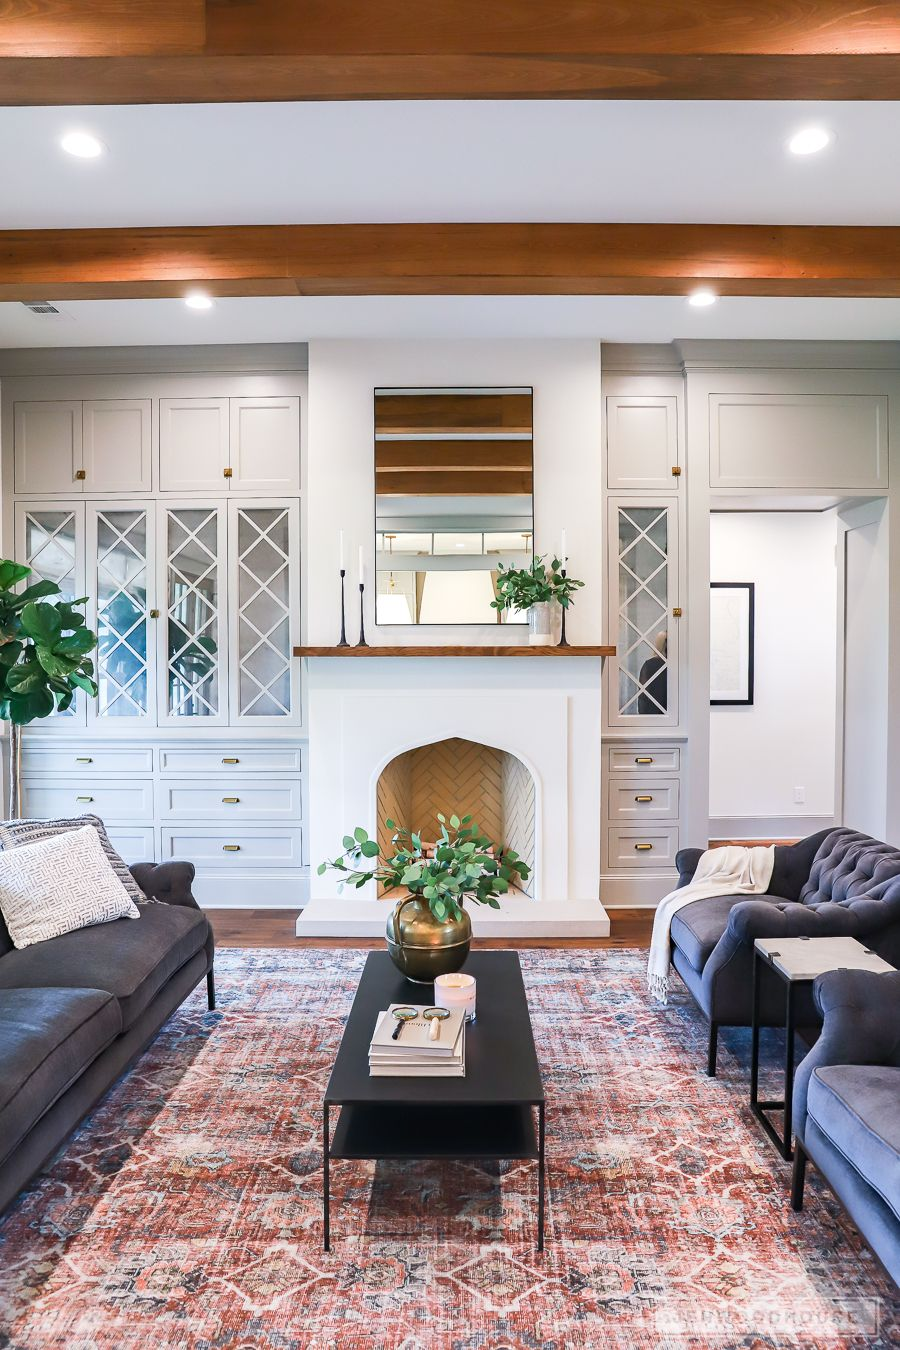 2018 Parade Of Homes Waco Tx Design Magnolia Construction Photo Jen Woodhouse